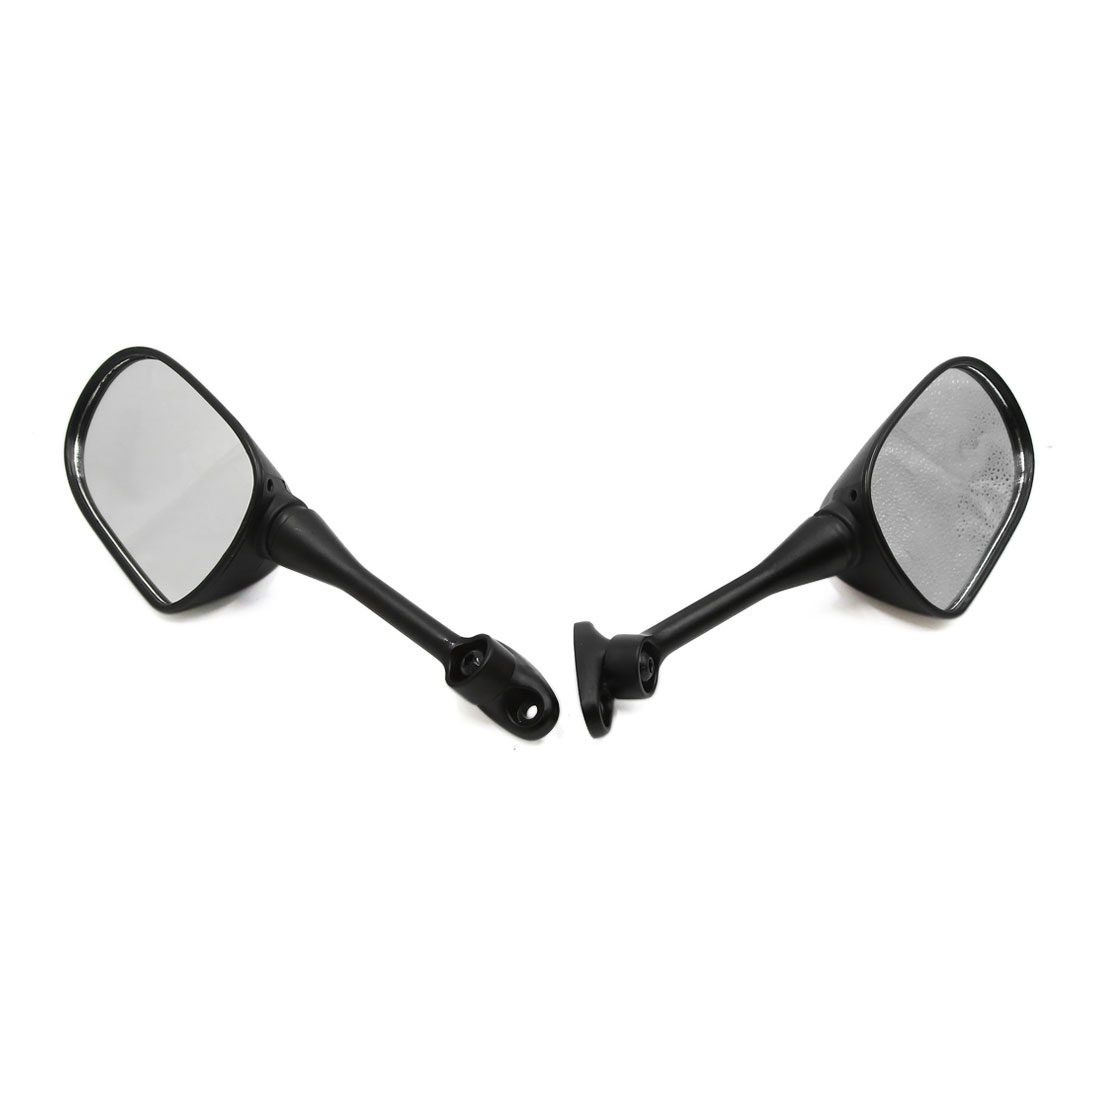 2pcs Black Motorcycle Motorbike Modified Rearview Reversing Reflective Mirrors - image 1 of 4